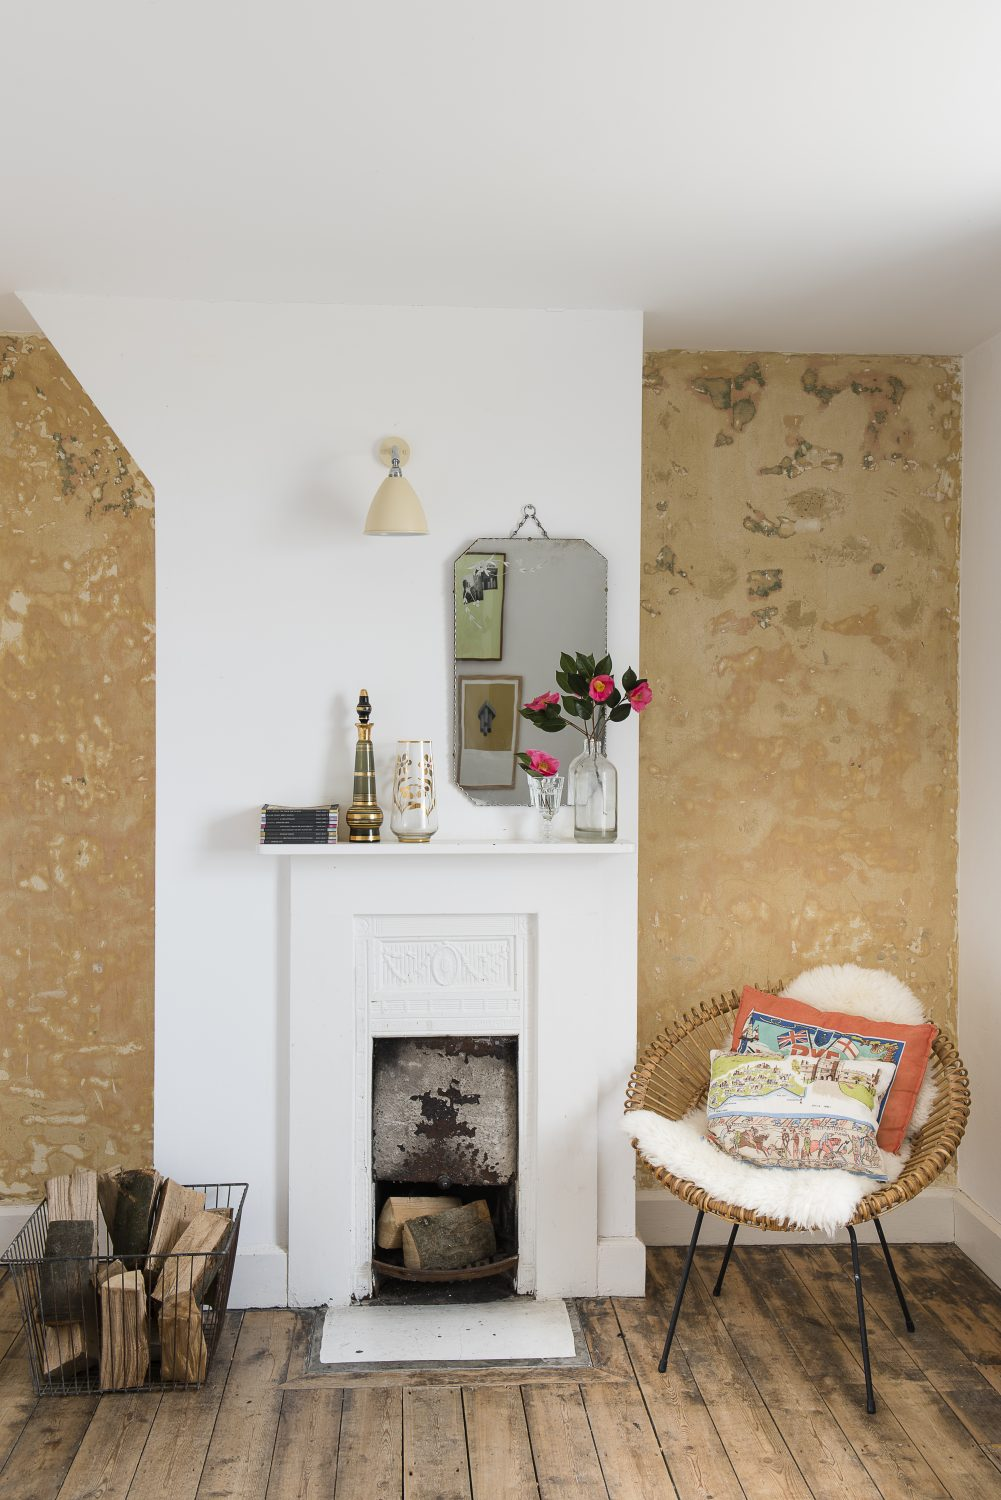 In the East facing double bedroom, Marta stripped off the old wallpaper and liked the distressed plaster beneath it so much she decided to keep it. She has had the 1950s wicker chair for many years. The French painter's ladder was found at Wish Barn Antiques in Rye